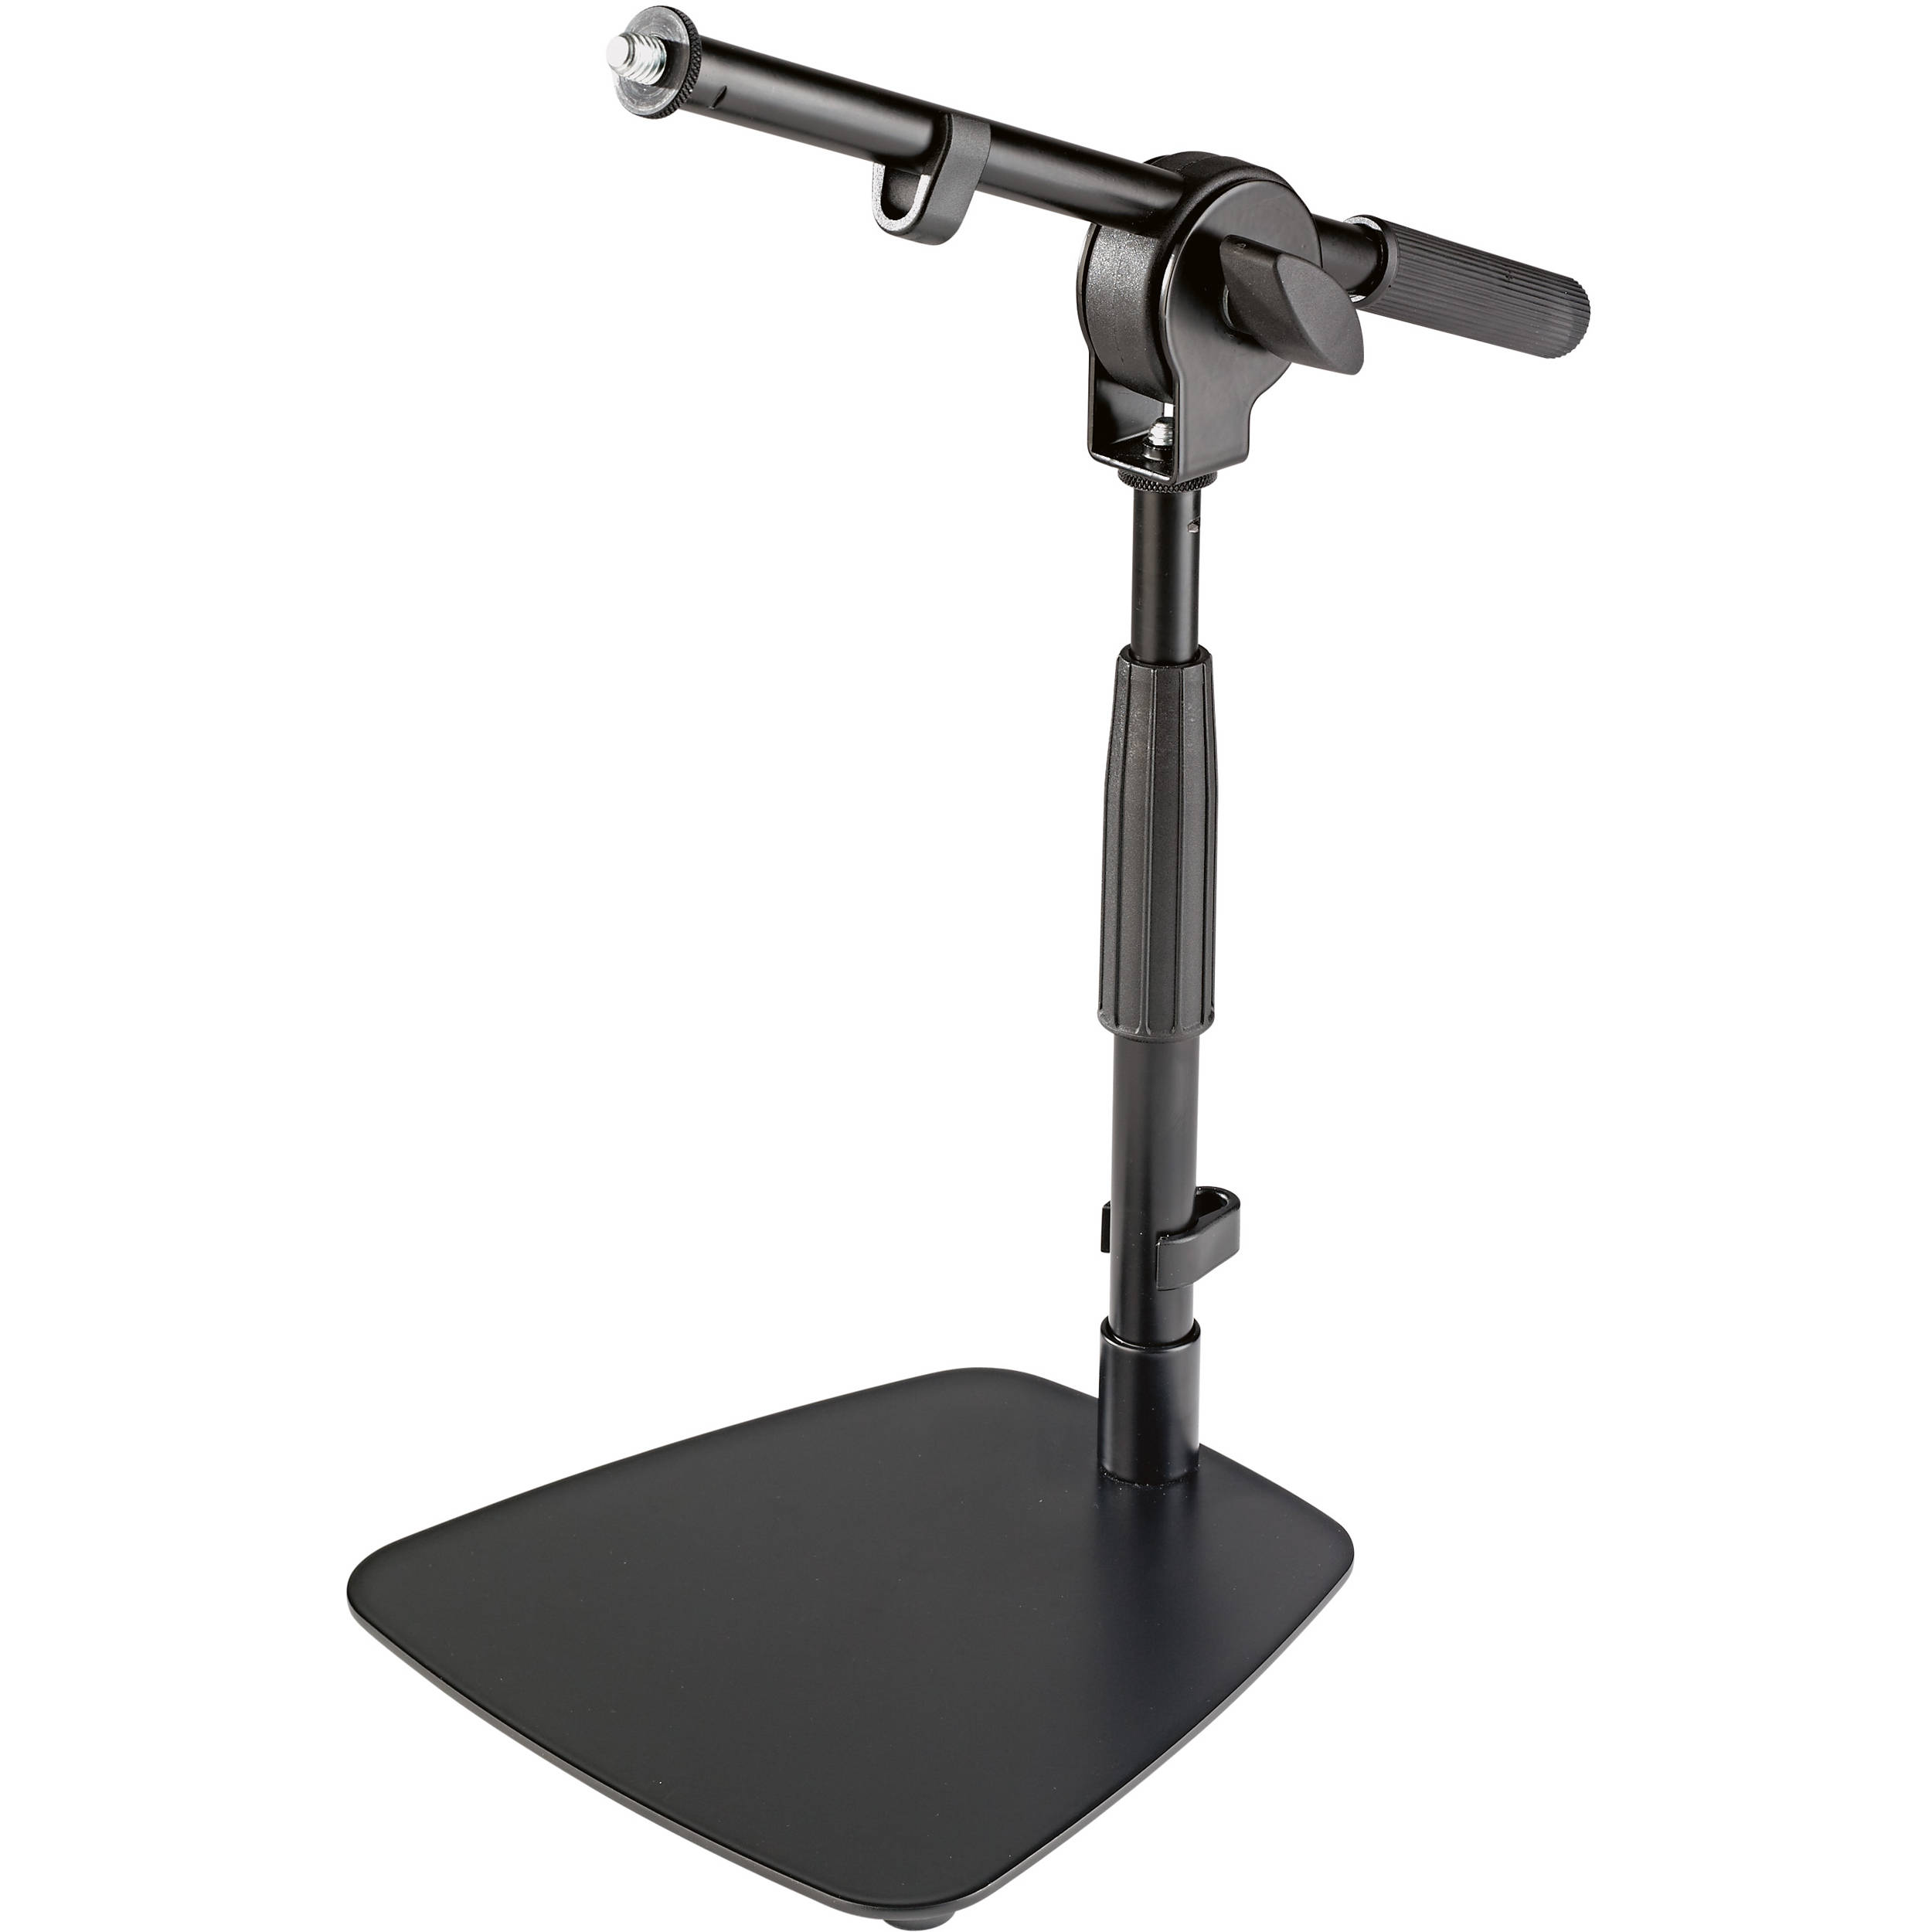 K Amp M 25995 Floor Amp Tabletop Microphone Stand 25995 500 55 B Amp H